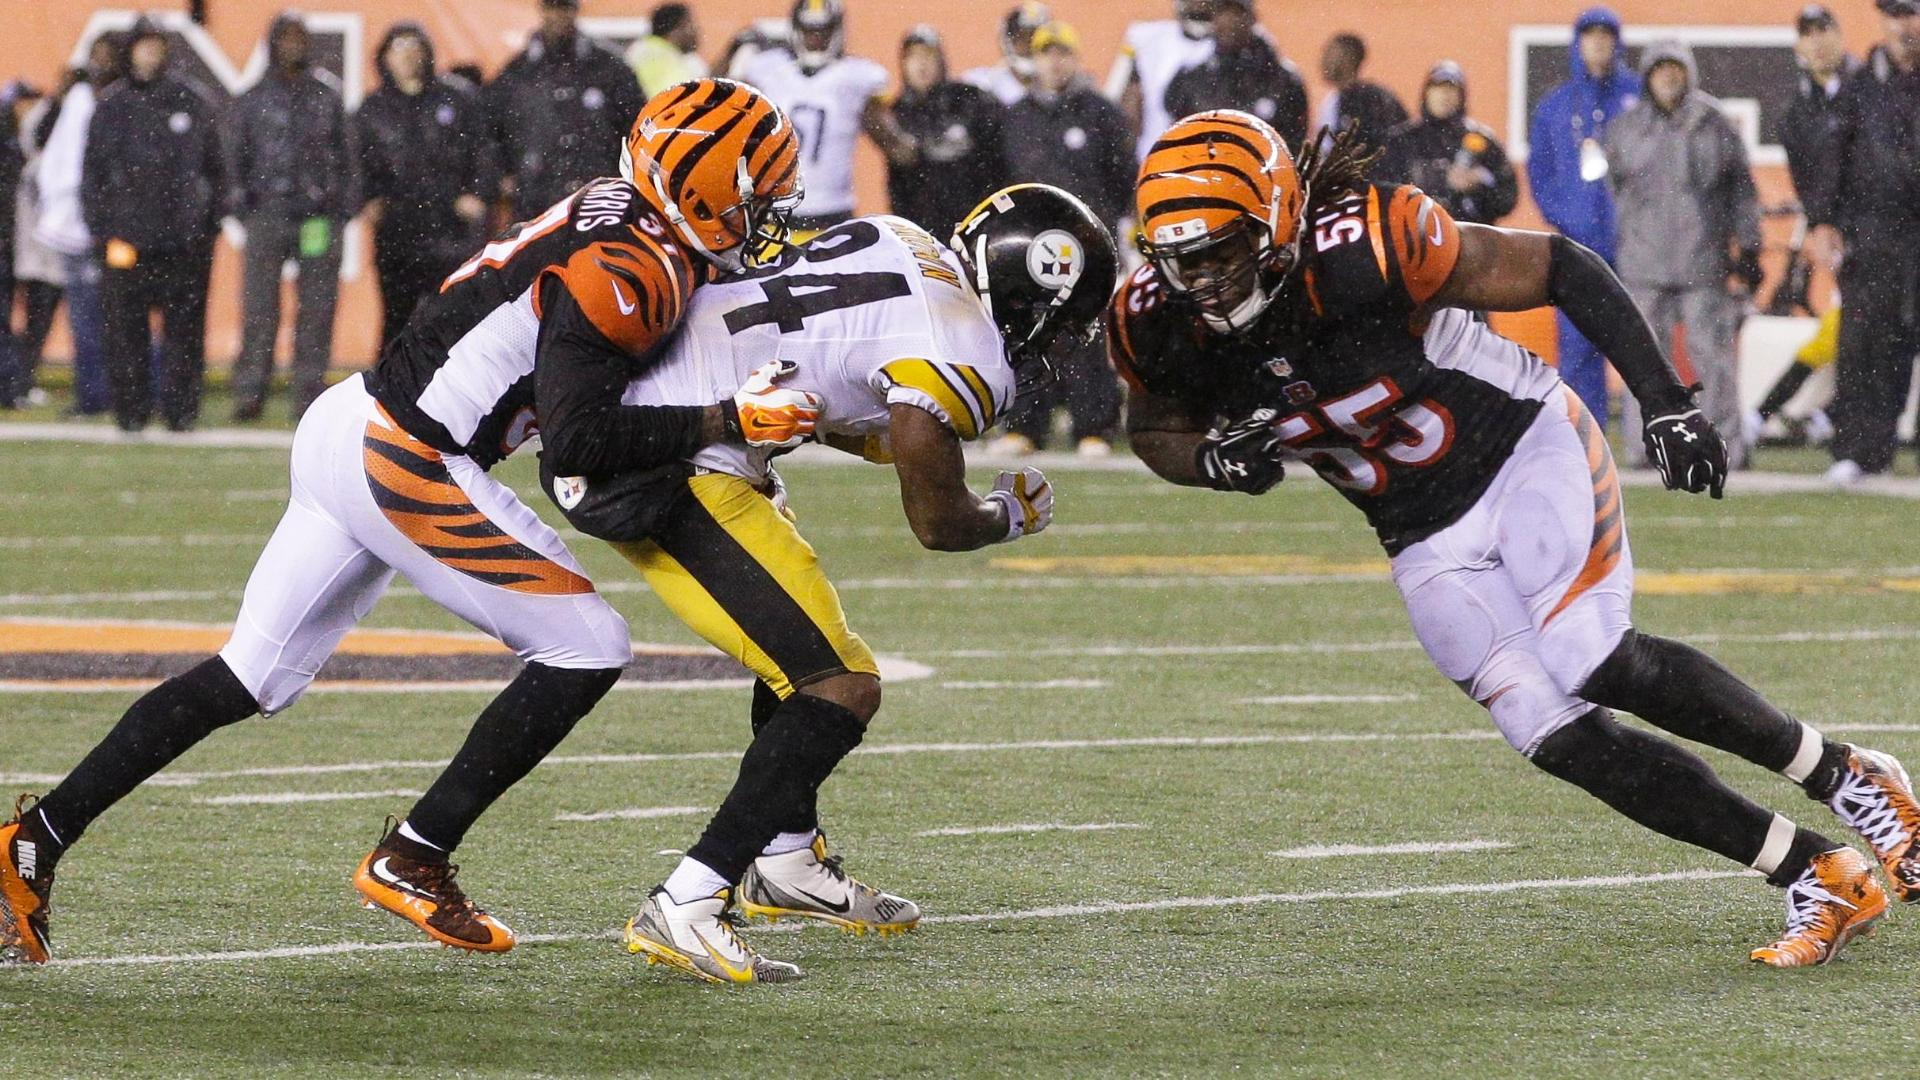 Penalties propel Steelers past Bengals